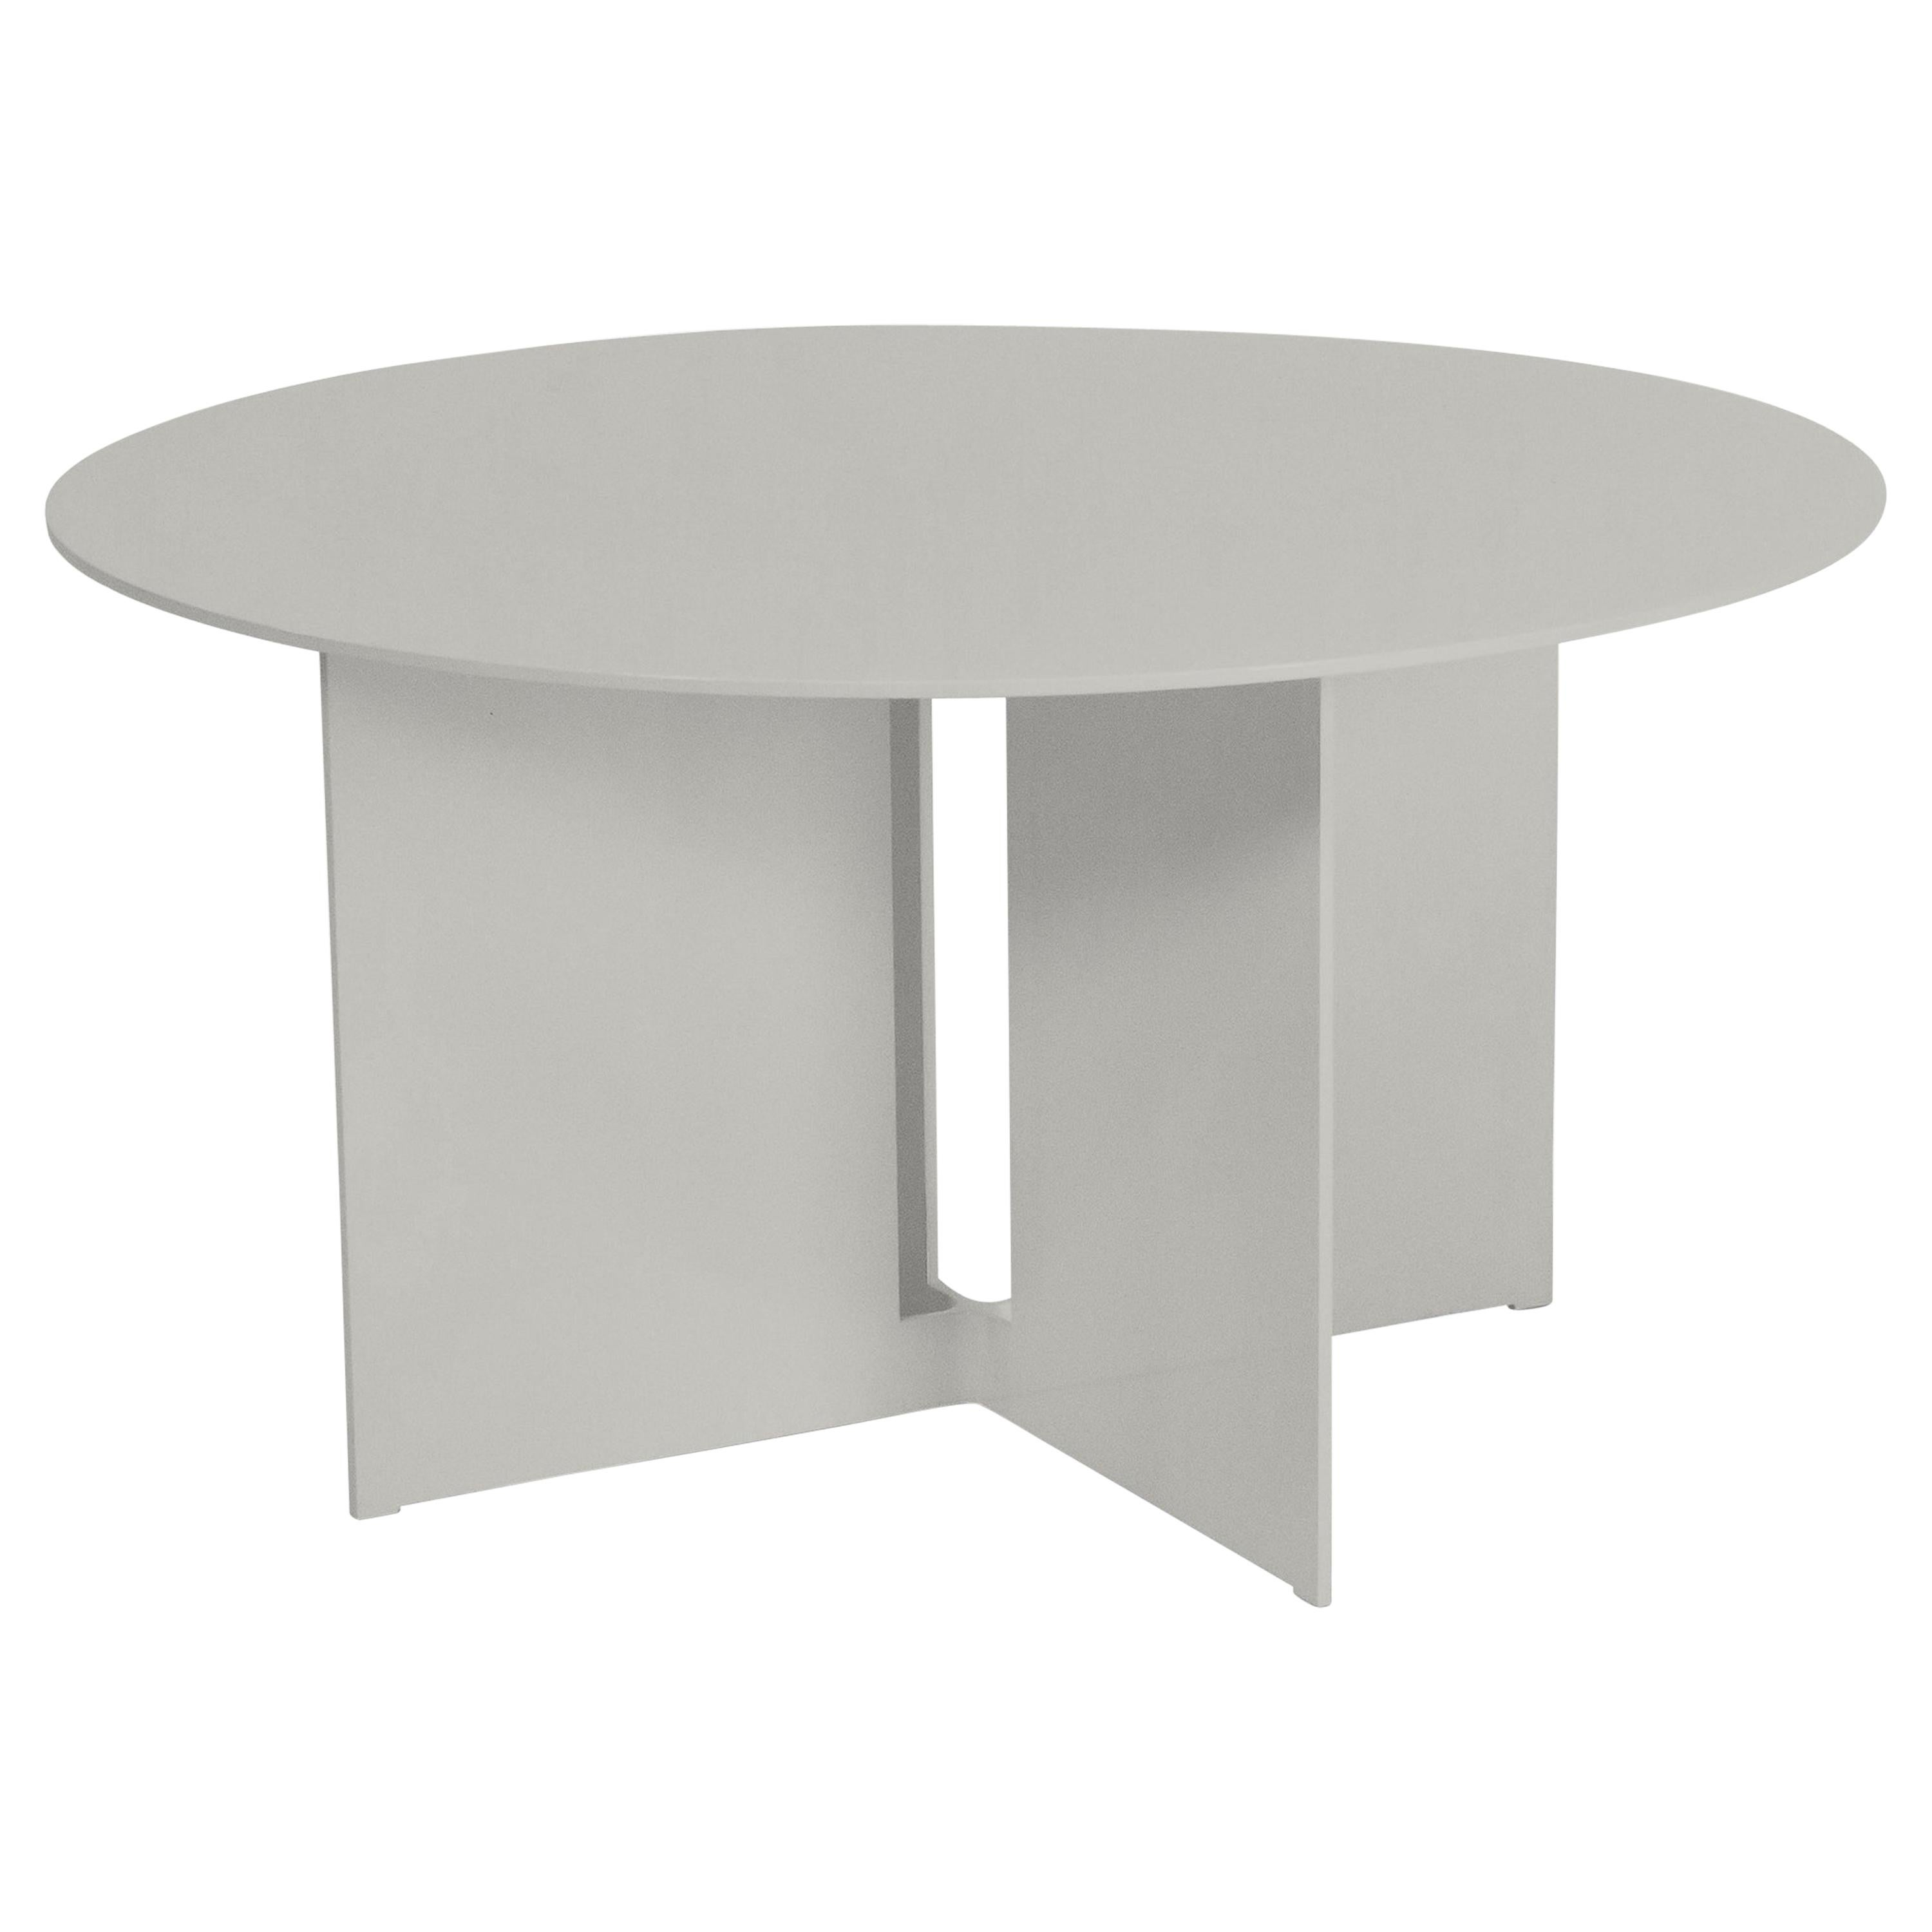 Mers Coffee Table in Aluminum Satin